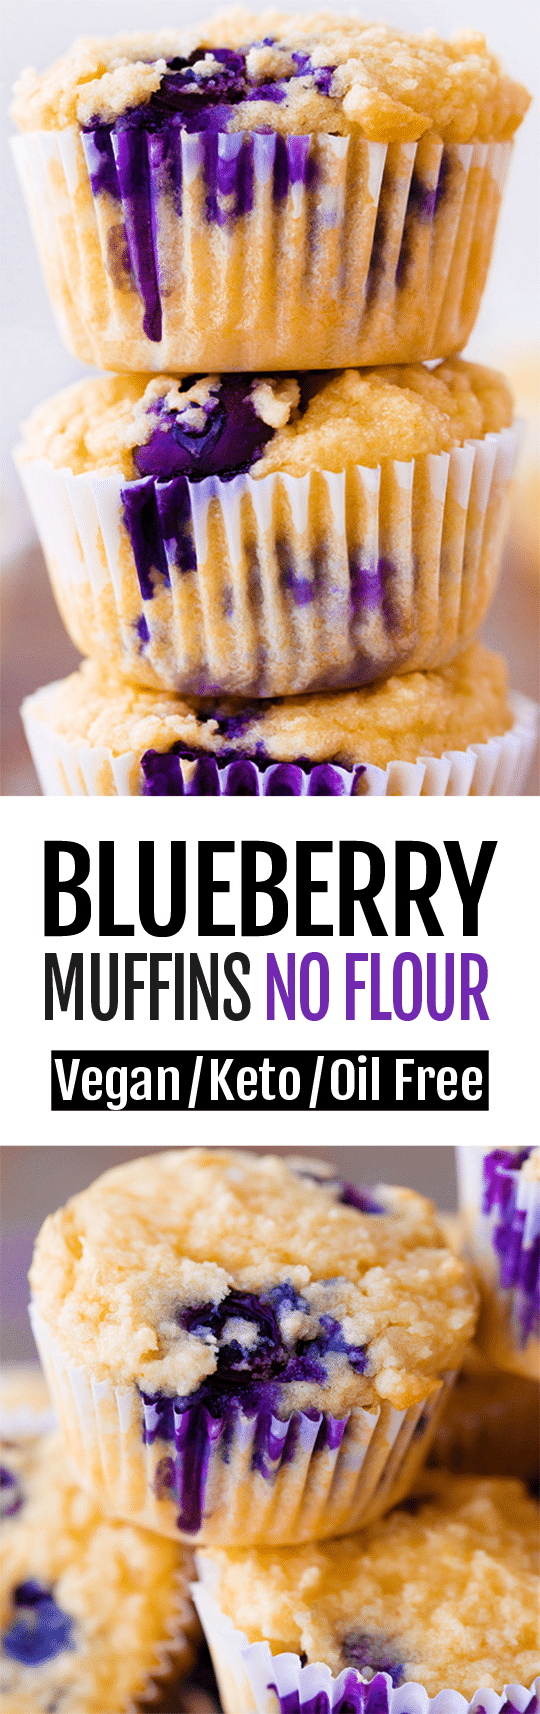 7 Ingredient Easy Keto Blueberry Muffin Recipe